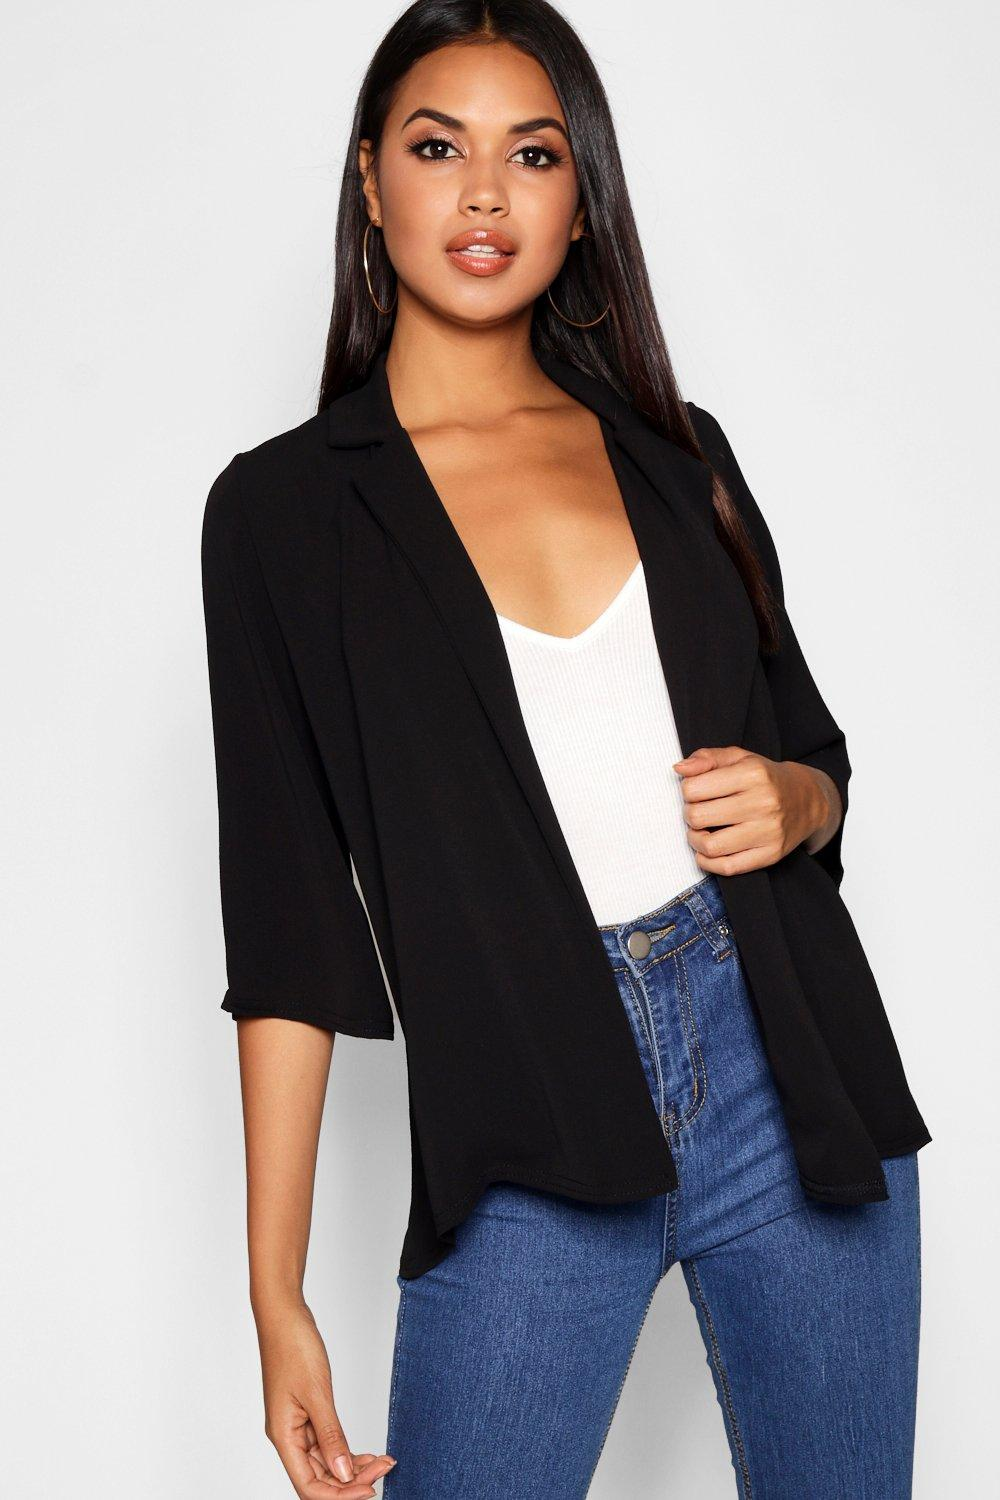 Loose Collared black black Jacket Collared Fit Loose Jacket Loose Fit Collared Fit UU0Bq